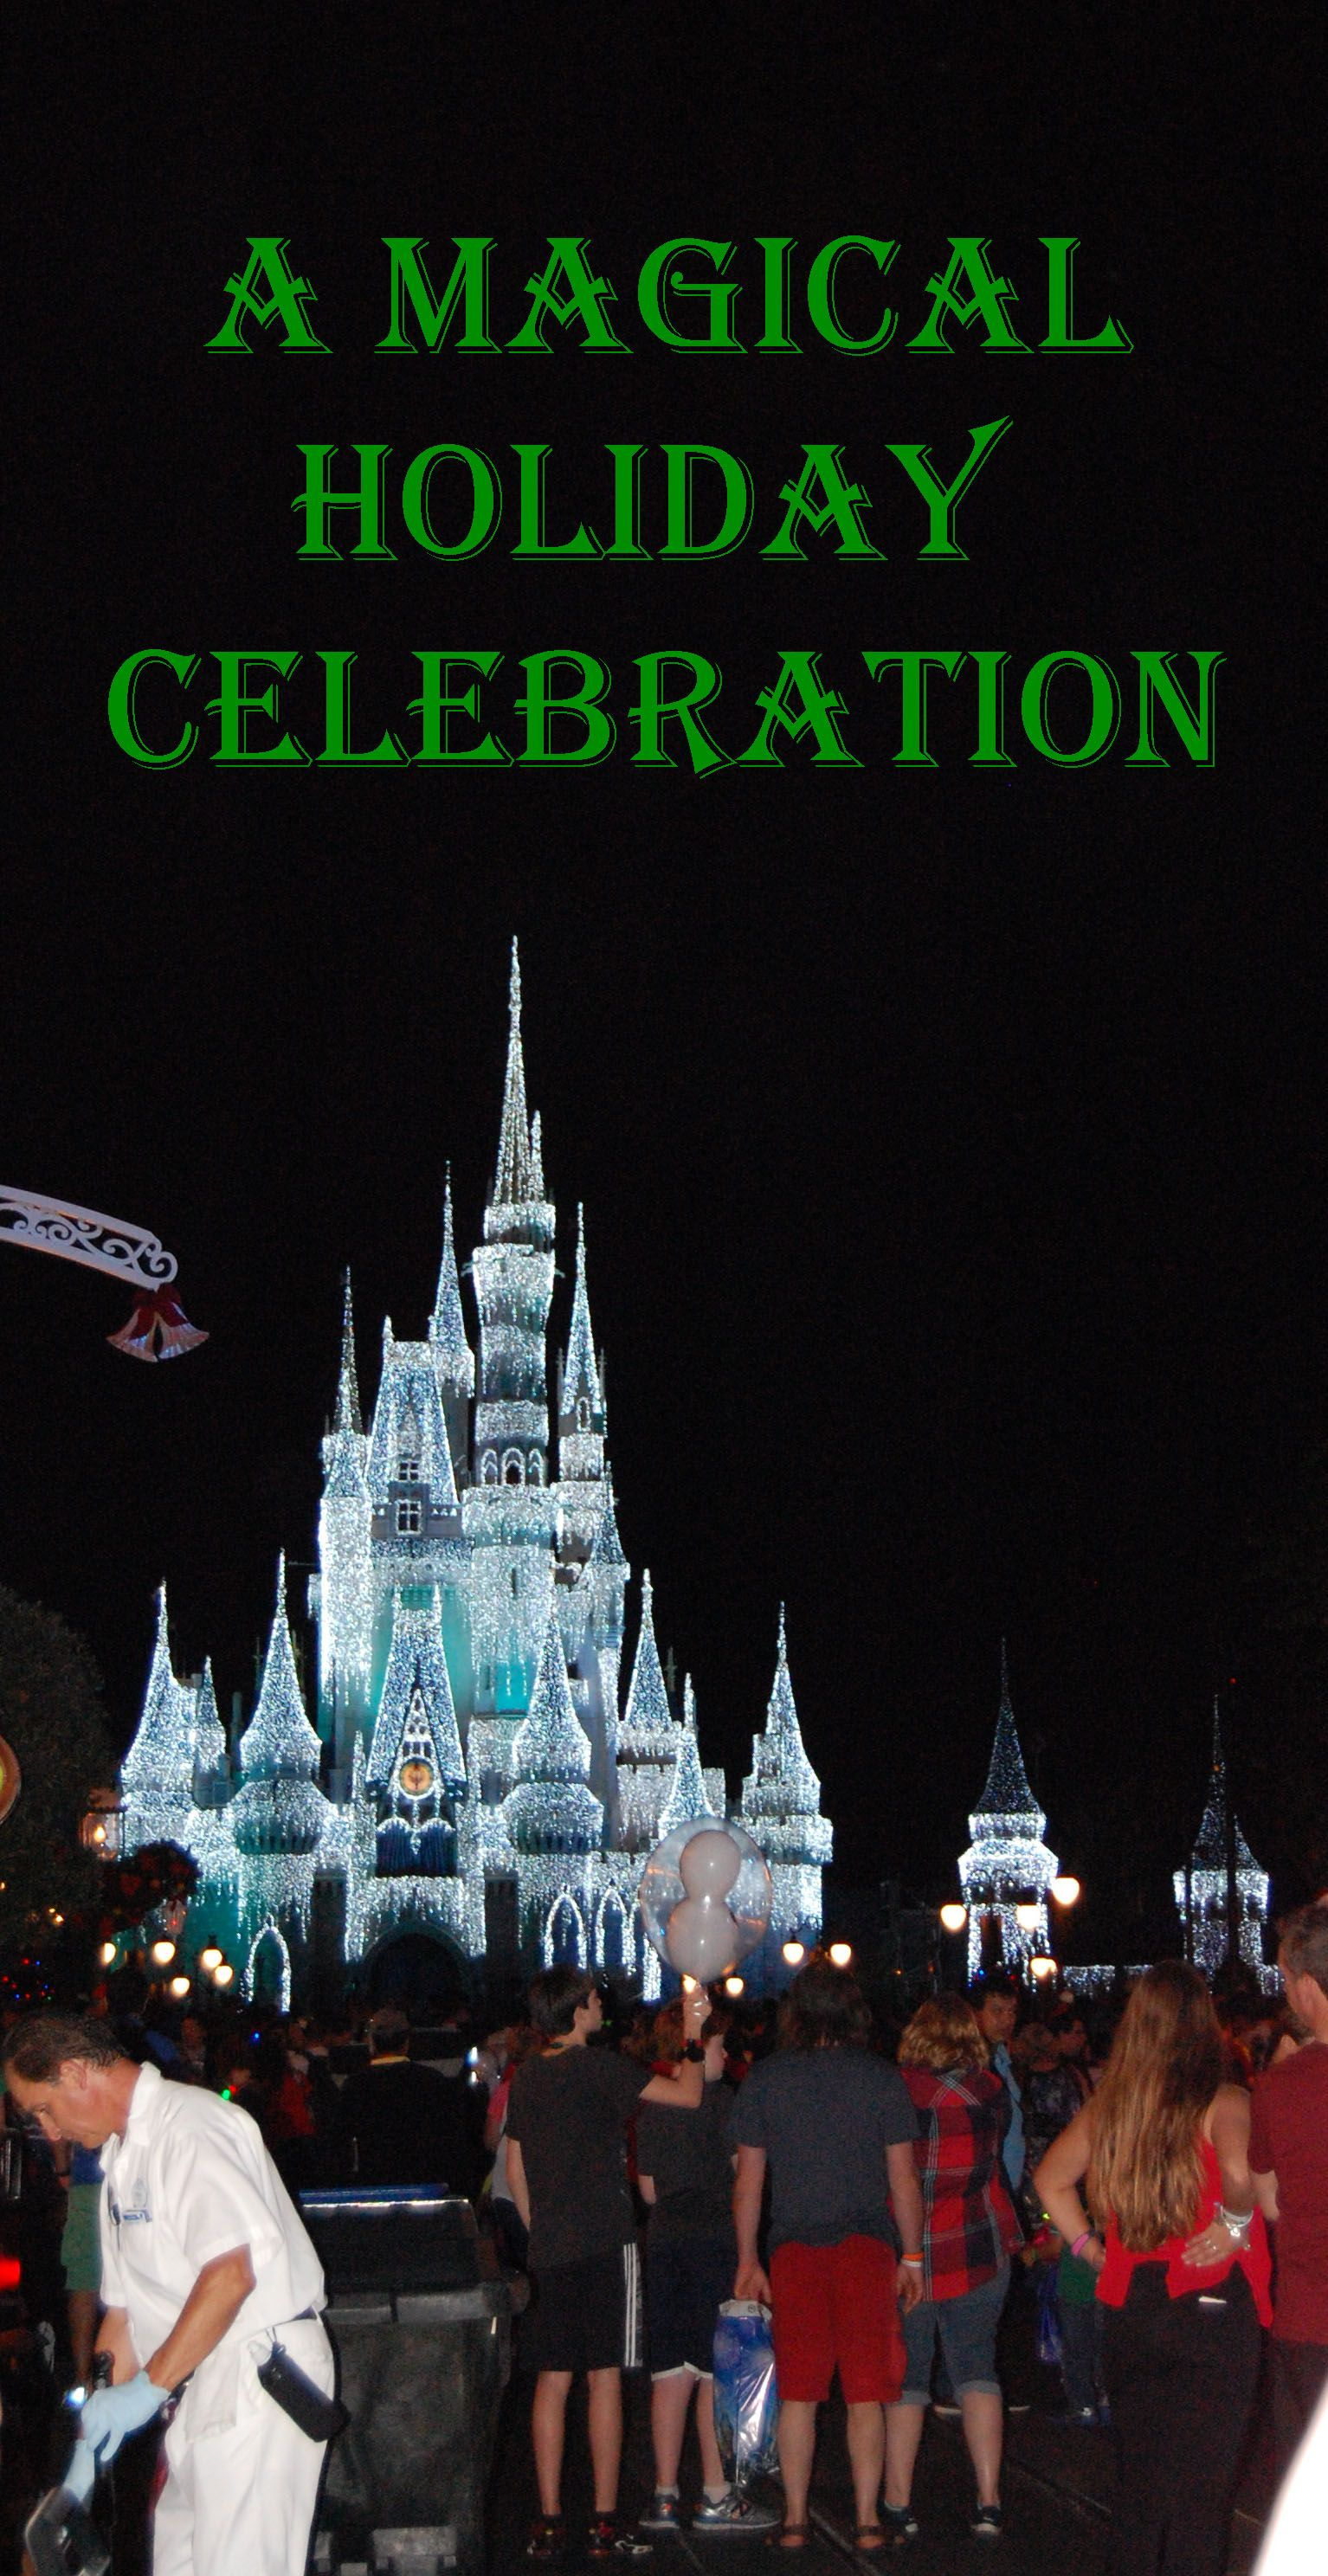 Thanksgiving week is a great time to be at Disney World because you can experience the magic of the holidays with low crowds.  This is our trip report from November 2015.